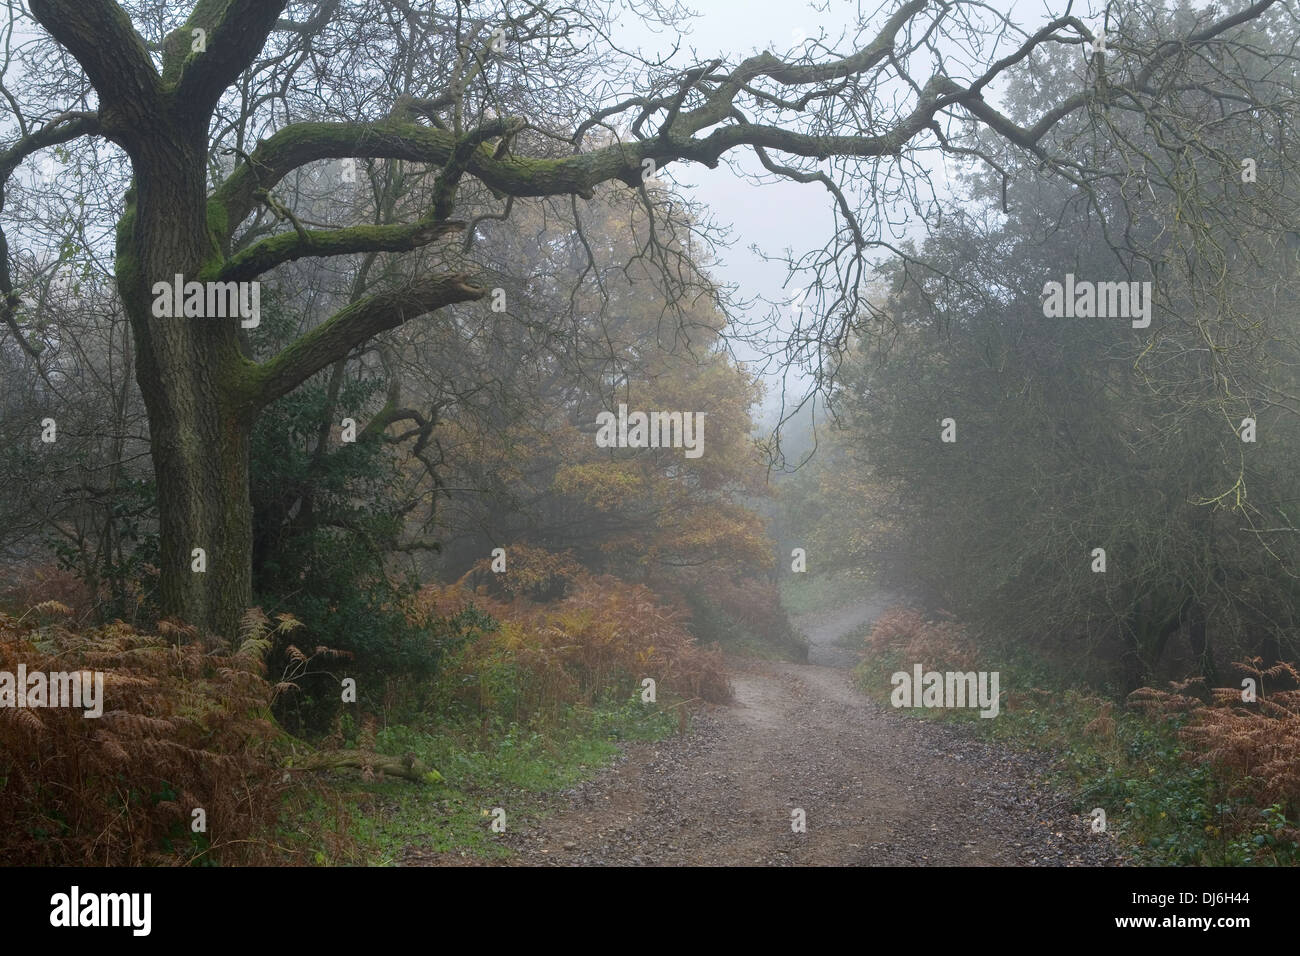 A footpath disappears into the distant fog on the Malvern Hills between Hangman's Hill and Swinyard Hill. Stock Photo